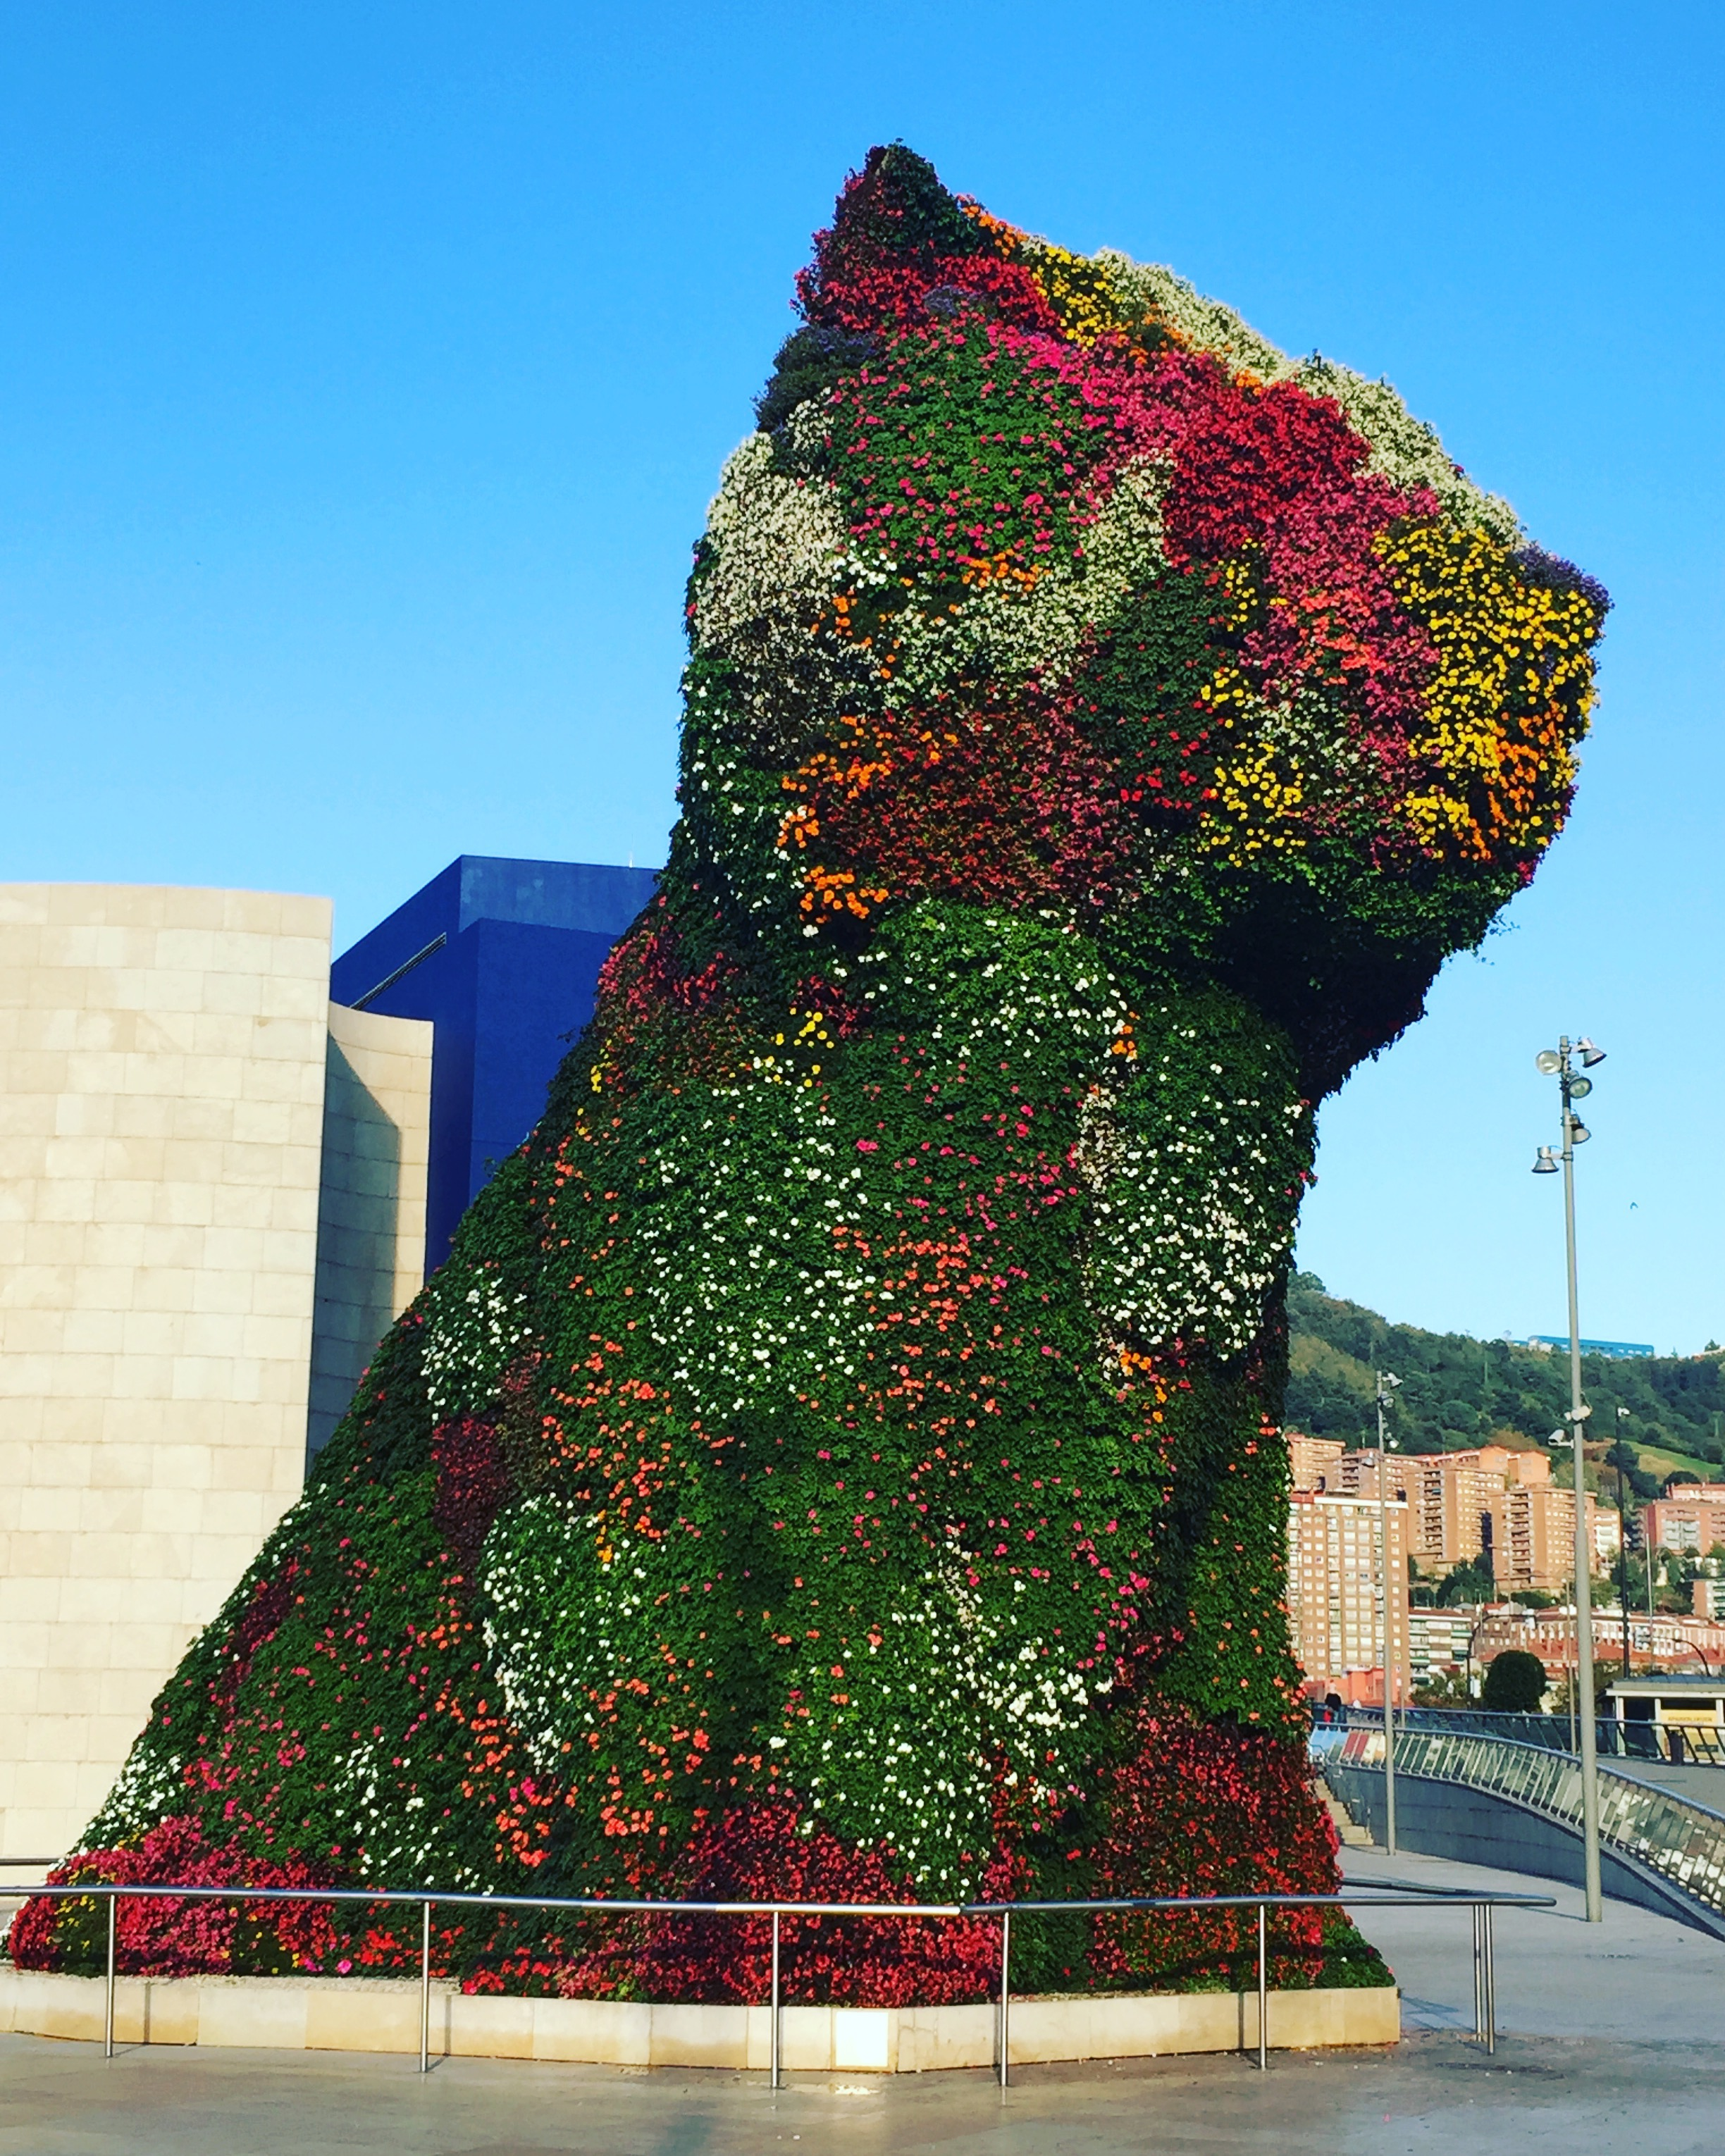 Jeff Koons at the Giggenheim Bilbao, Spain